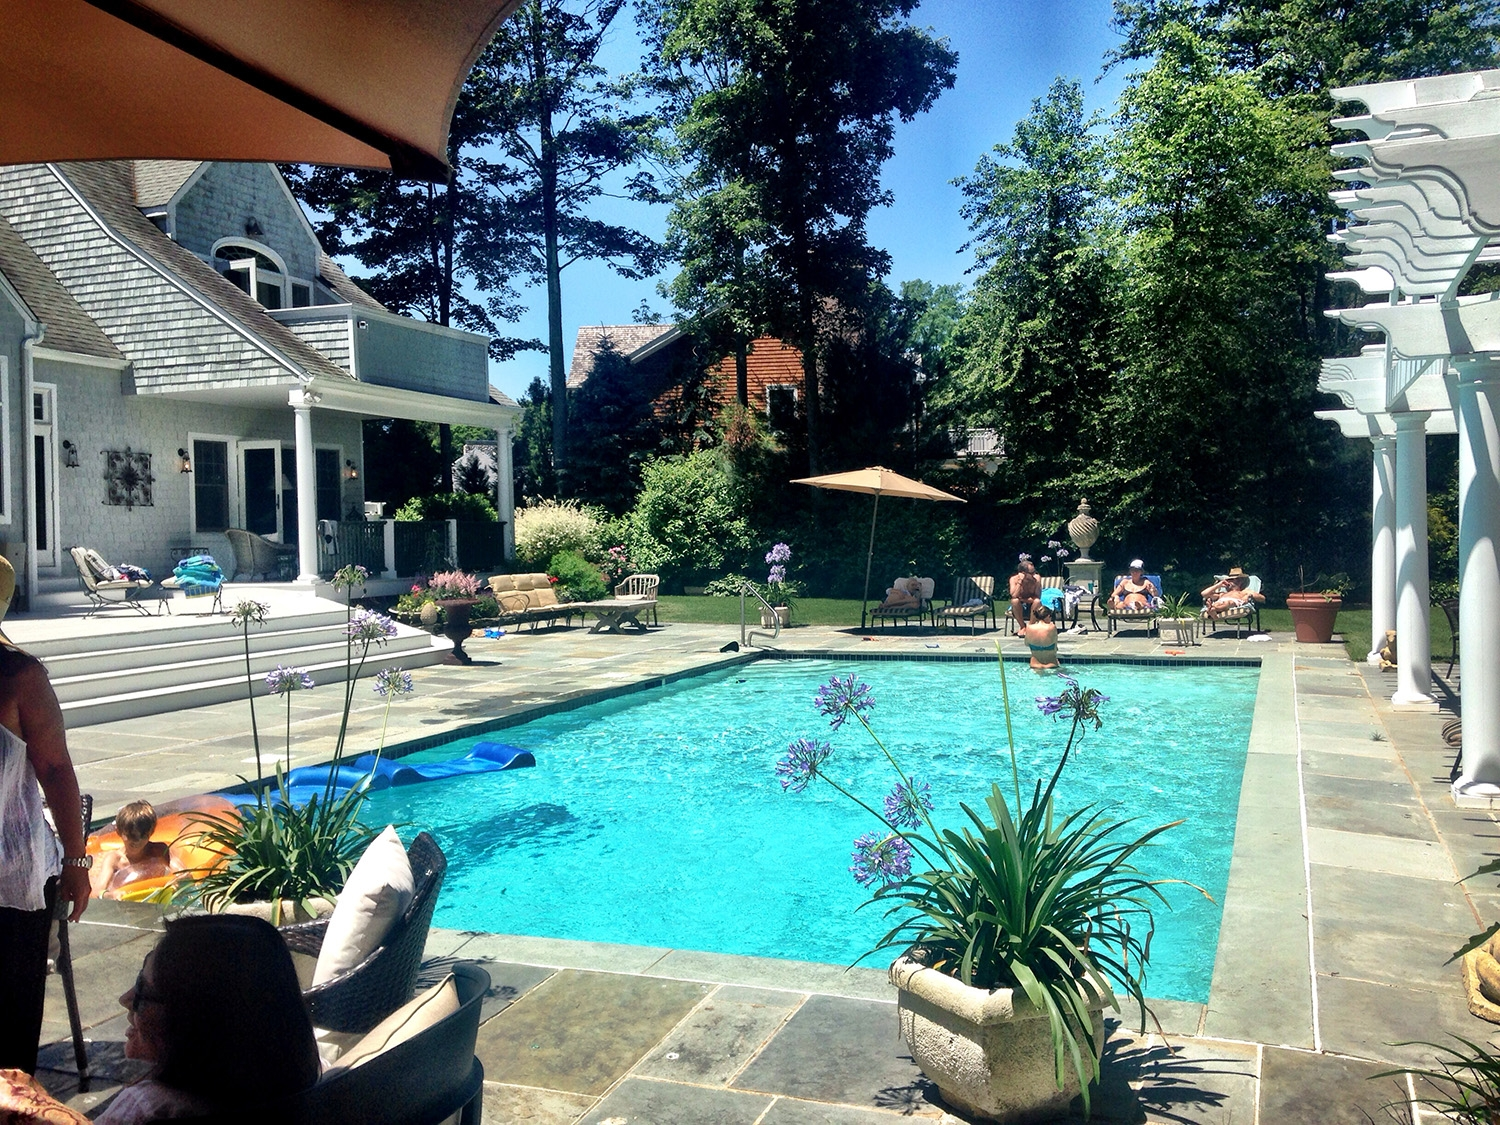 The large pool on a sunny day at a house in East Hampton